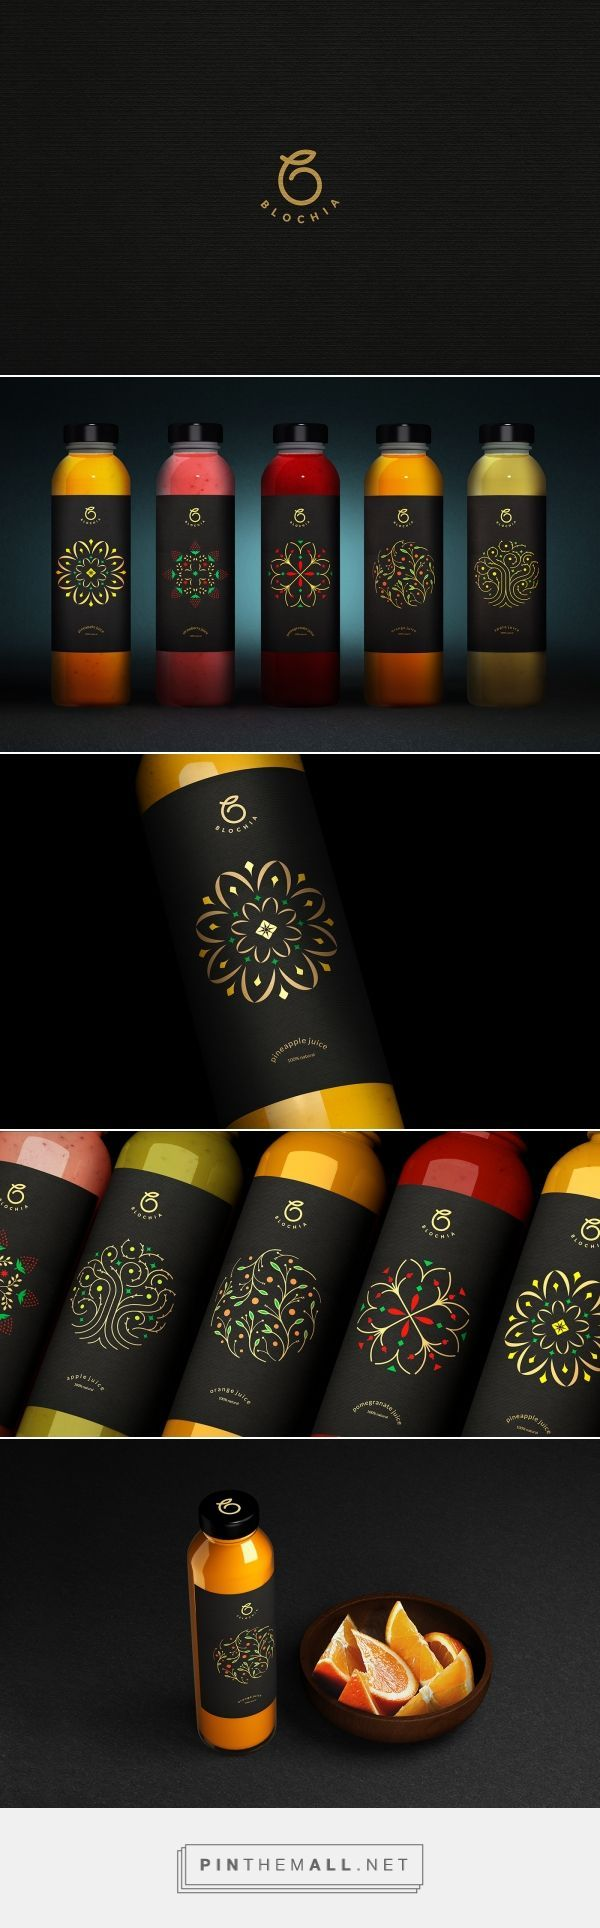 BLOCHIA Fresh Juice Packaging by Sabeti Studio | Fivestar Branding Agency – Design and Branding Agency & Curated Inspiration Gallery